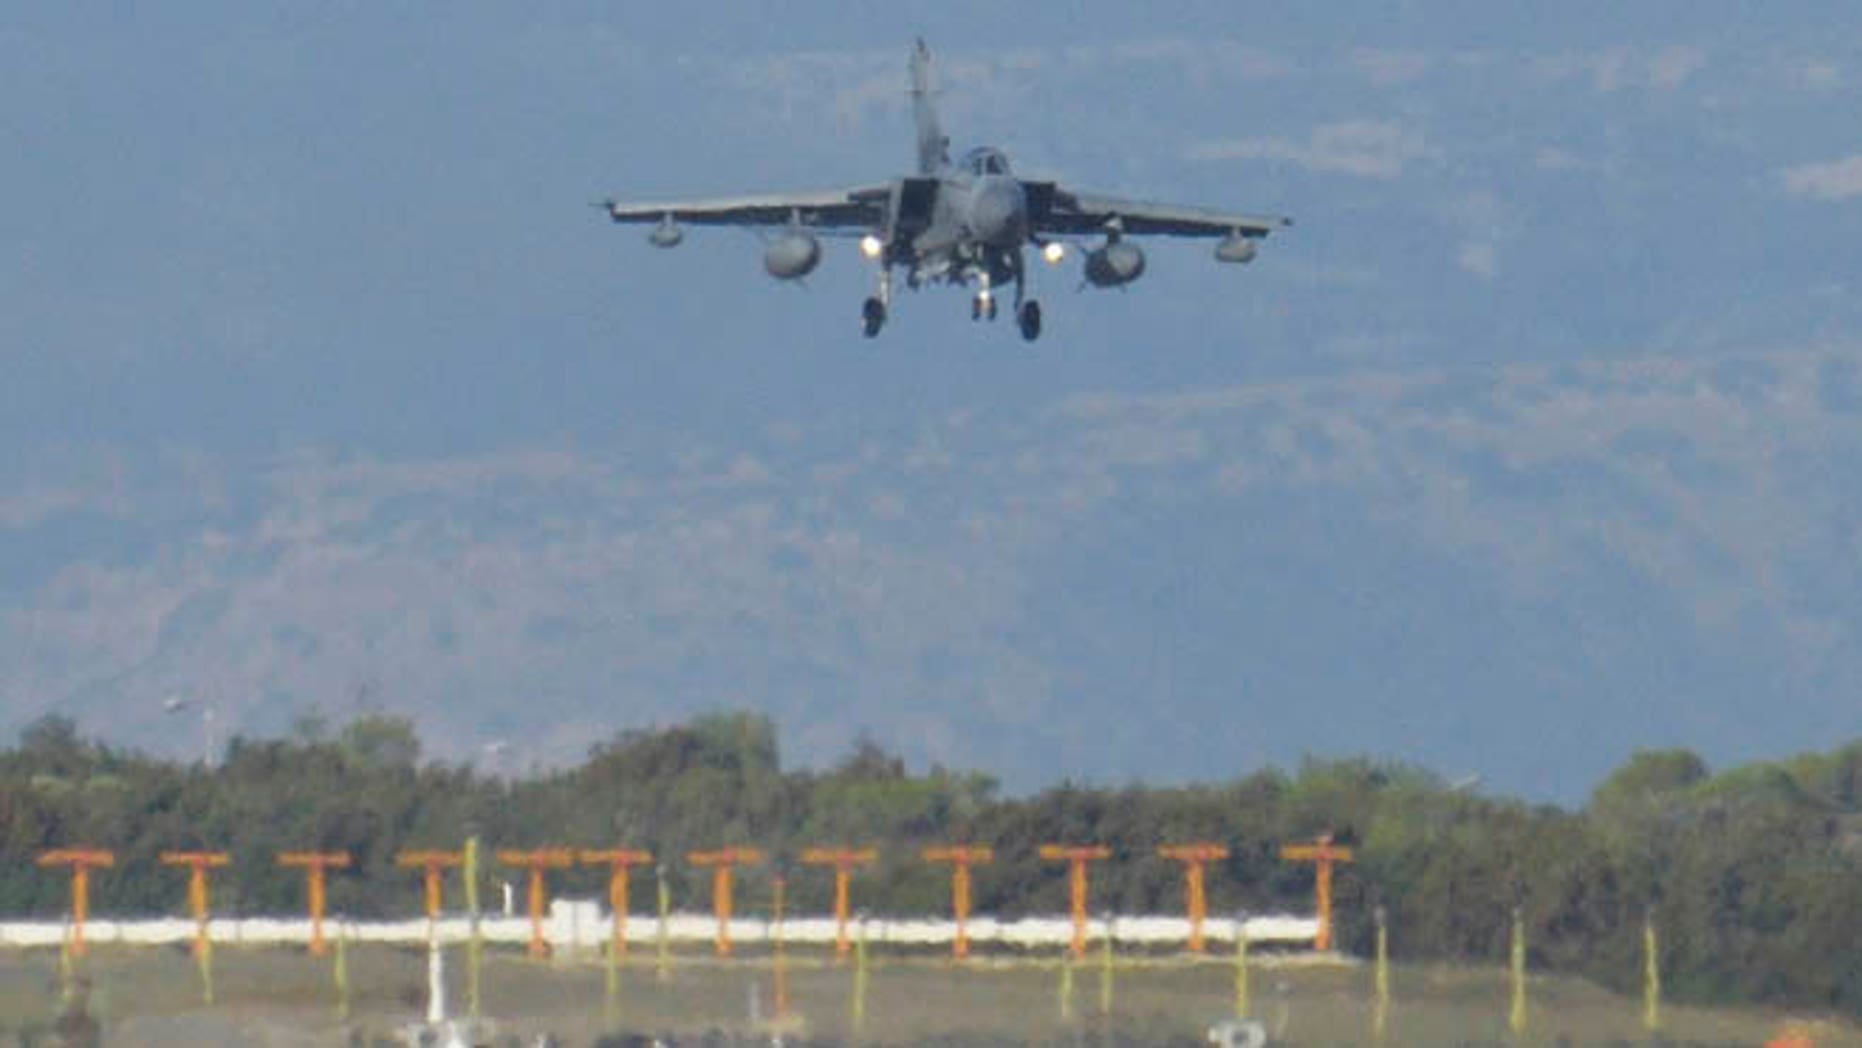 Dec. 3, 2015: A British Tornado warplane lands at the RAF Akrotiri, a British air base near coastal city of Limassol, Cyprus, after arriving from an airstrike against Islamic State group targets in Syria.